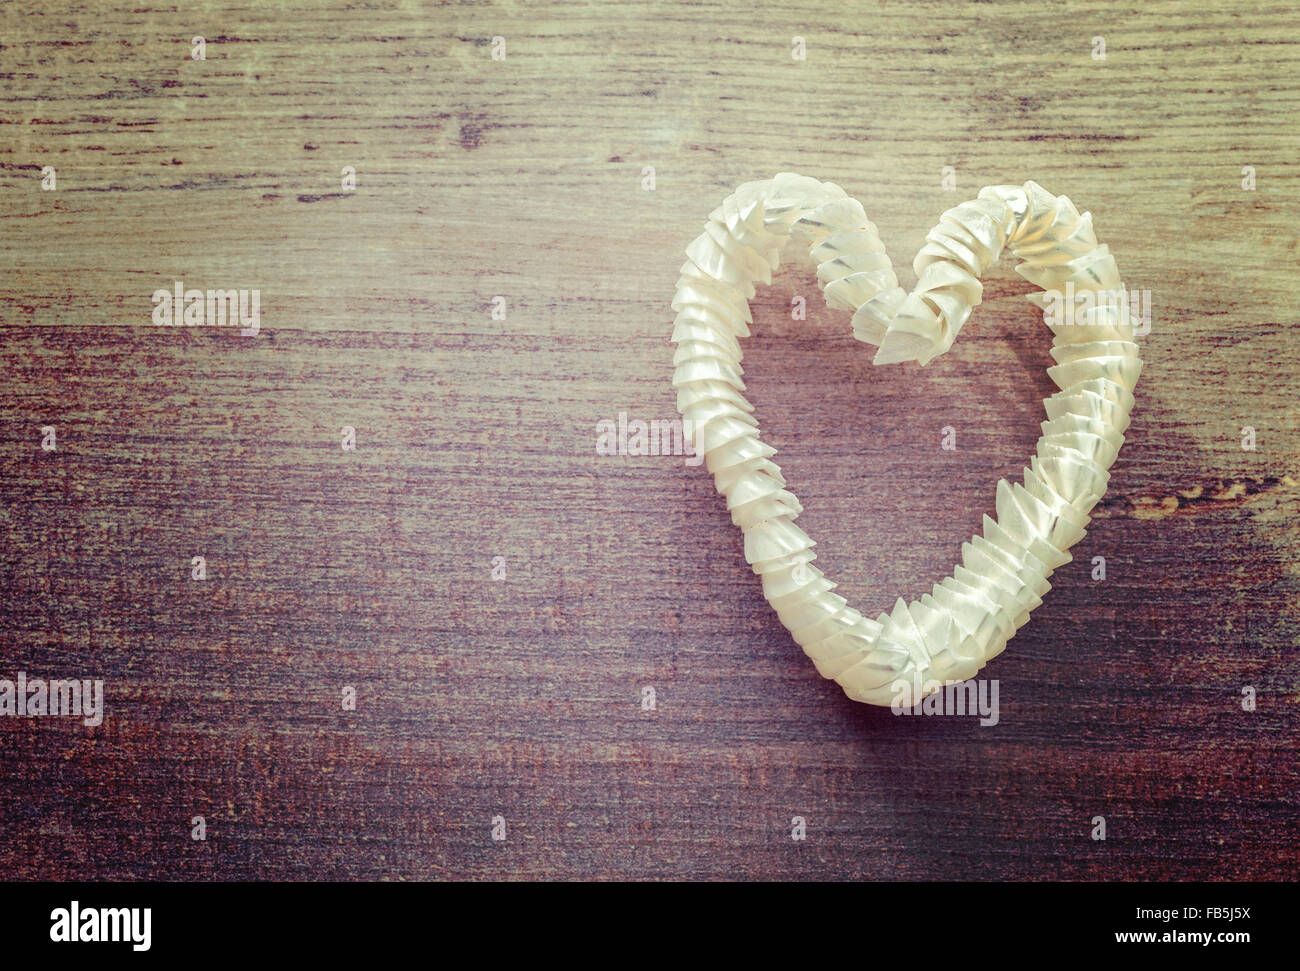 Vintage stylized heart made of shells on wooden background, space for text. - Stock Image